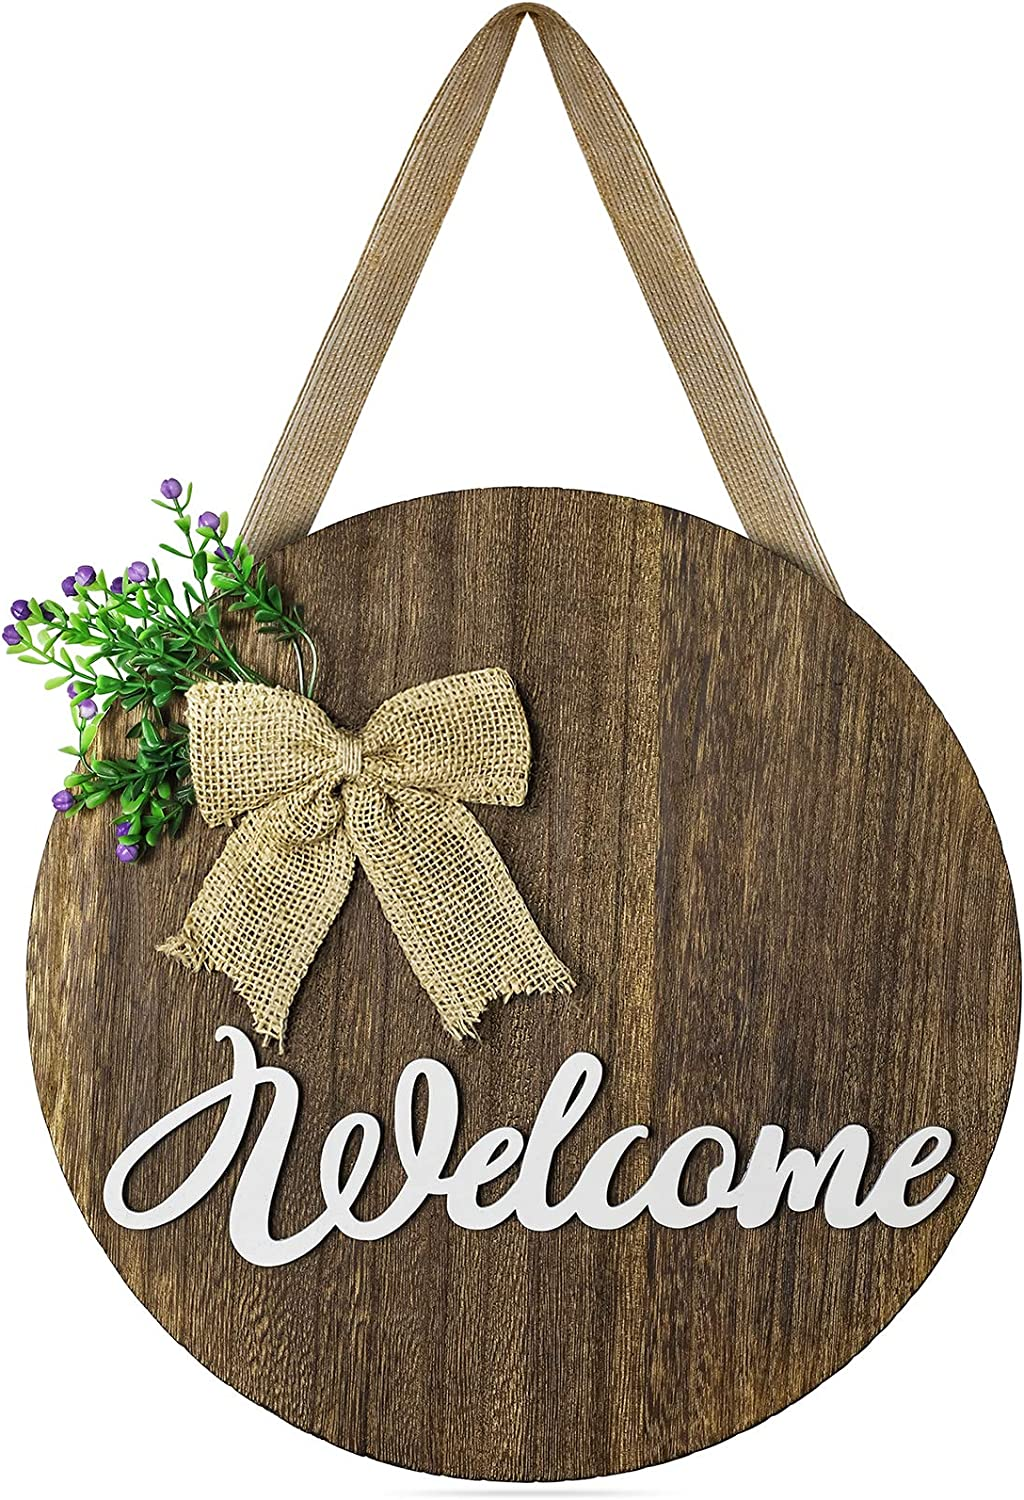 TJ.MOREE Welcome Sign for Front Door, Farmhouse Porch Sign,Rustic Wooden Door Decorations Wreaths Front Door Decorations Hanging with Flowers and Bow